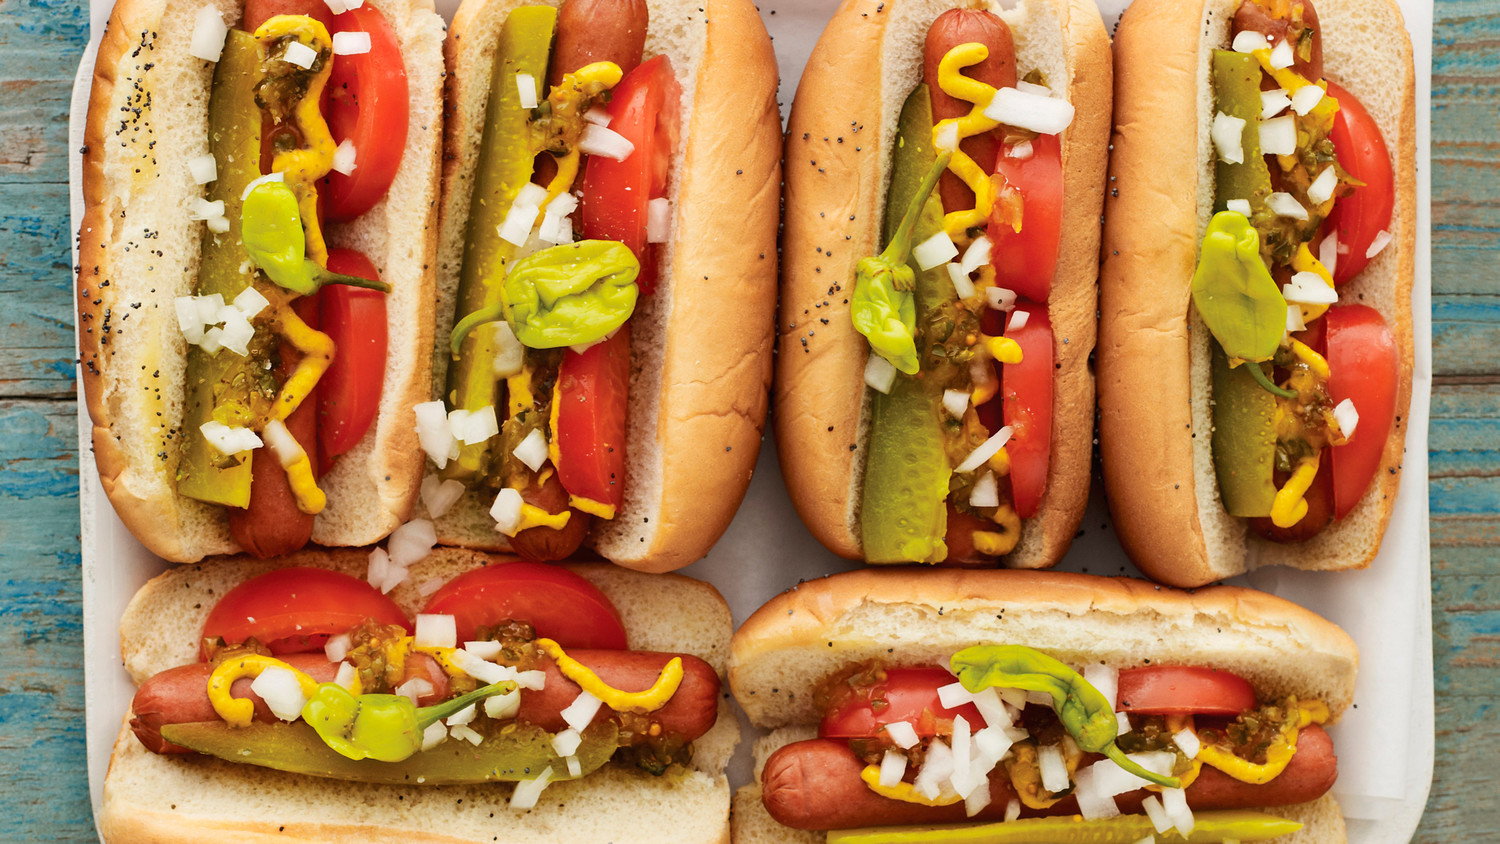 chicago-dog-madhungry002-0711mld107324_h